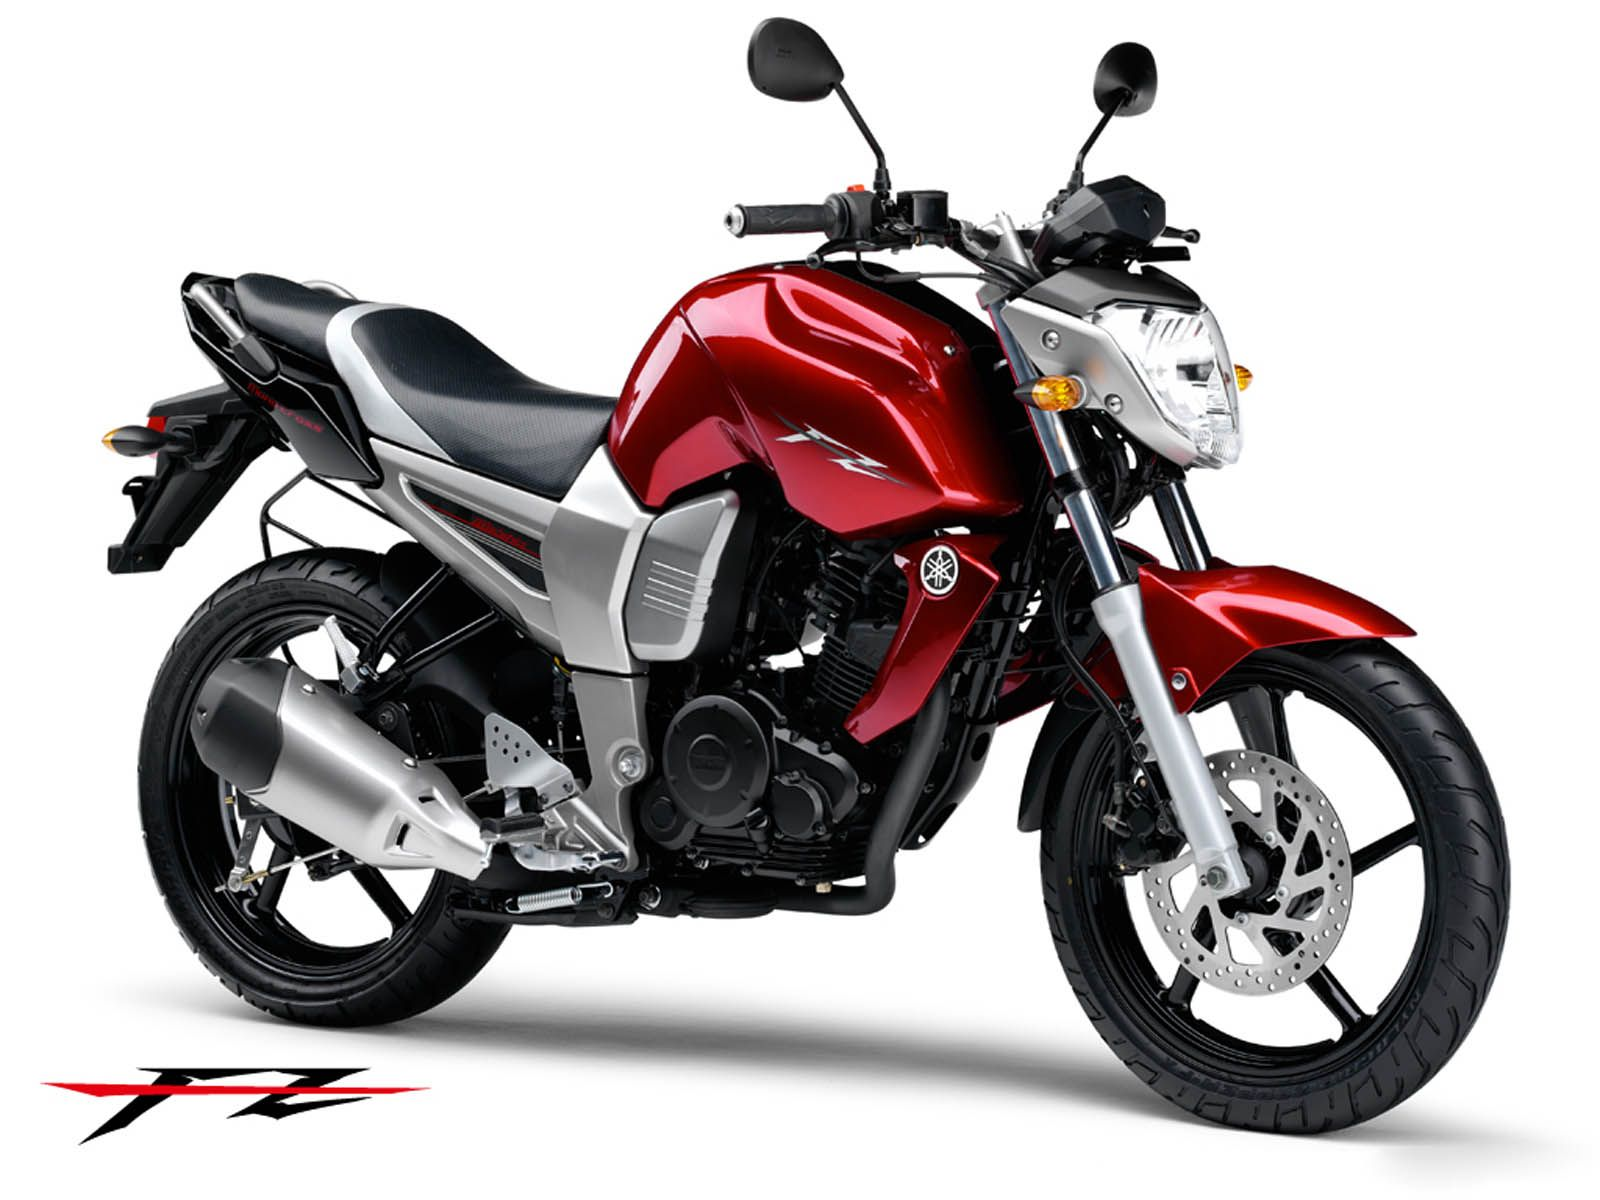 Yamaha Sz Images 7 Hd Wallpapers Buzz With Images Fz Bike